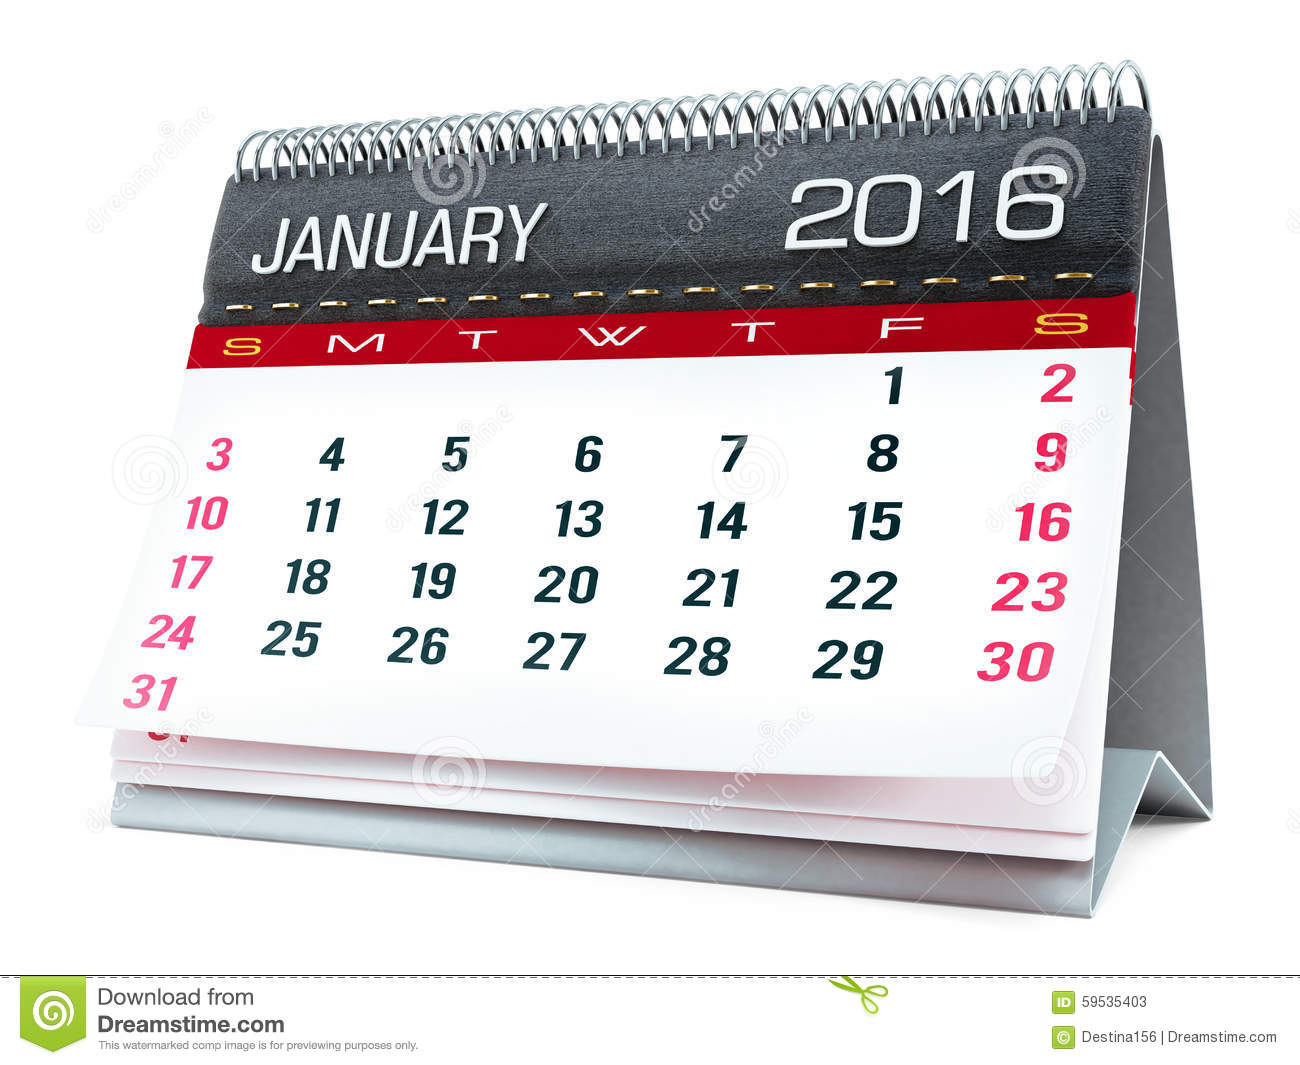 Janvier 2016 calendrier de bureau illustration stock illustration du mois neuf 59535403 - Calendrier de bureau photo ...